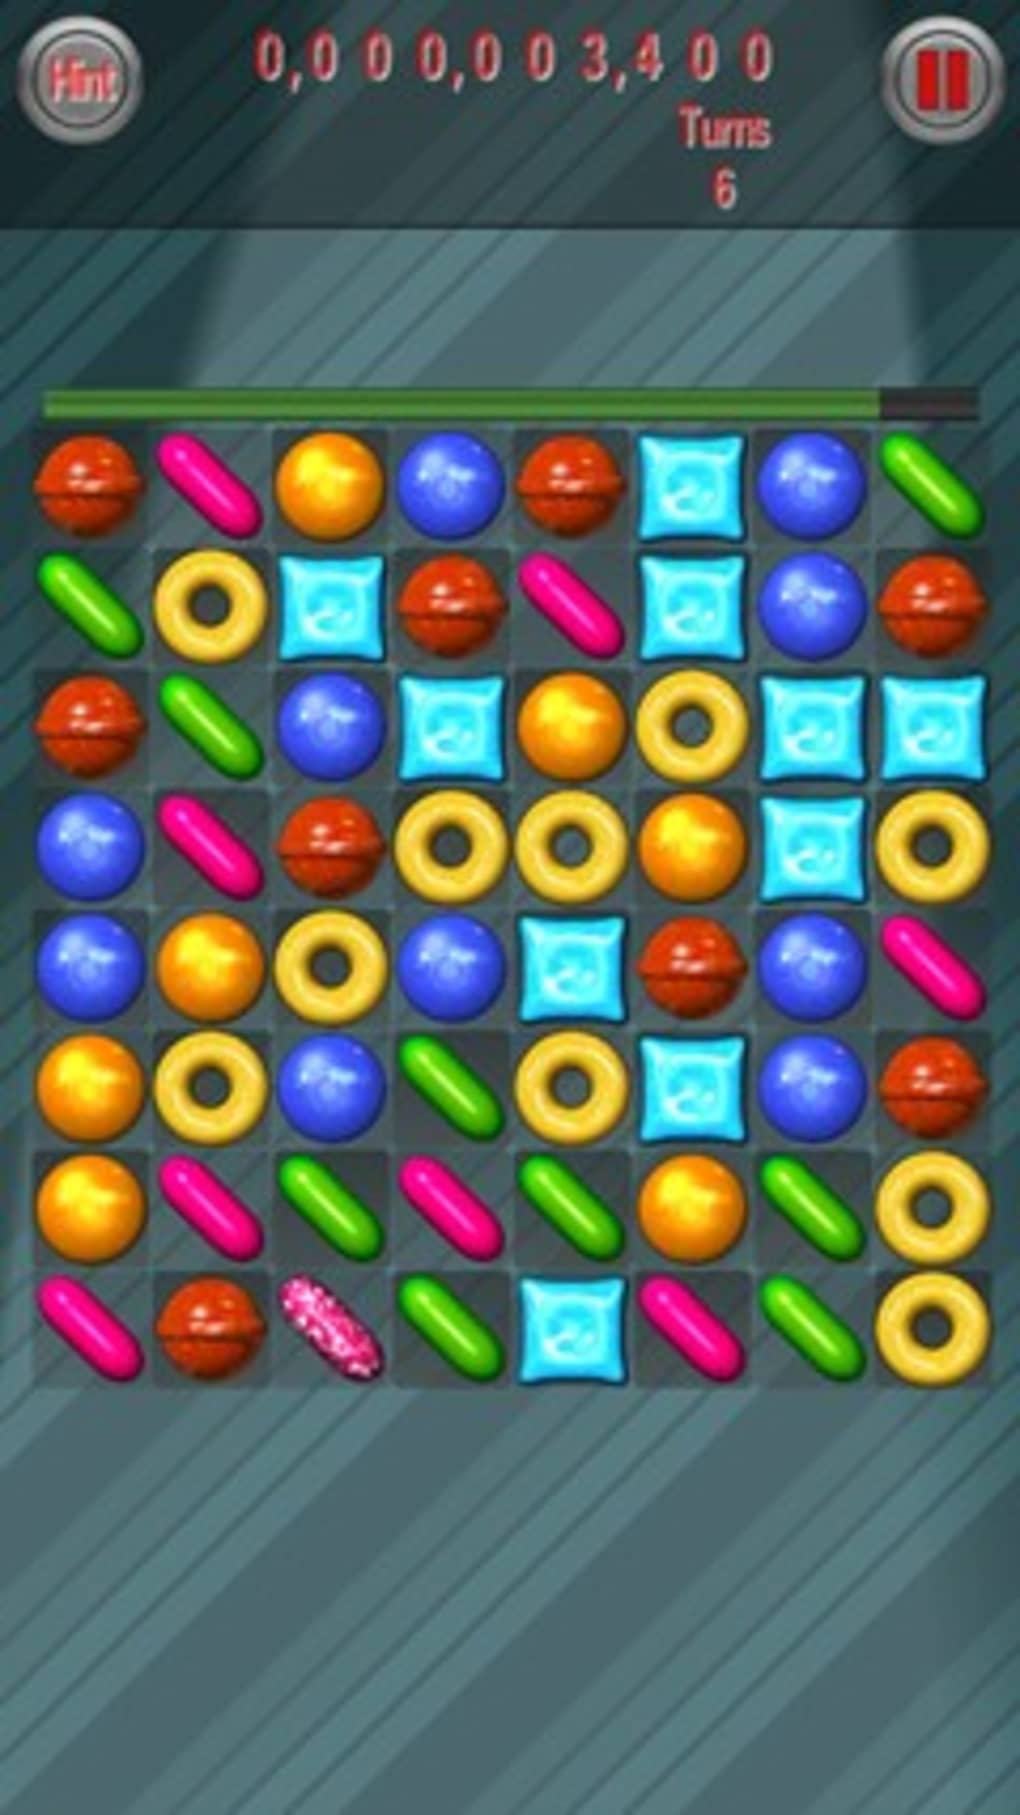 Garder Candy Crush Soda Saga mis à jour avec l'application d'Uptodown